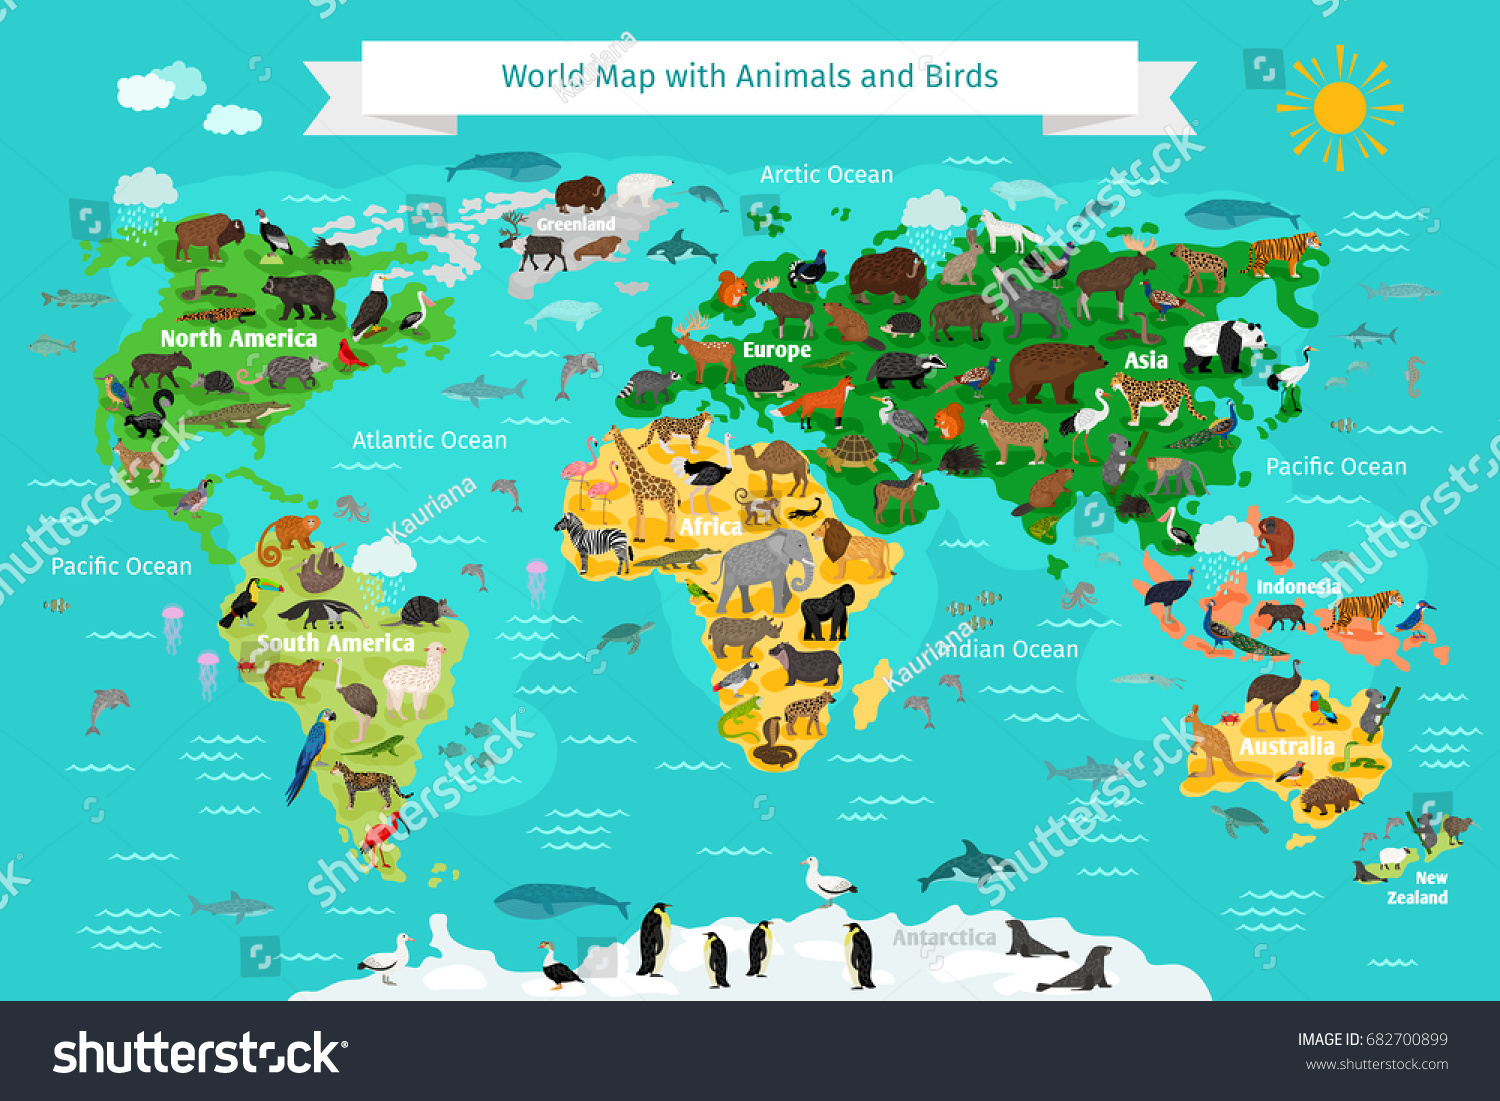 World map animals birds vectores en stock 682700899 shutterstock gumiabroncs Choice Image